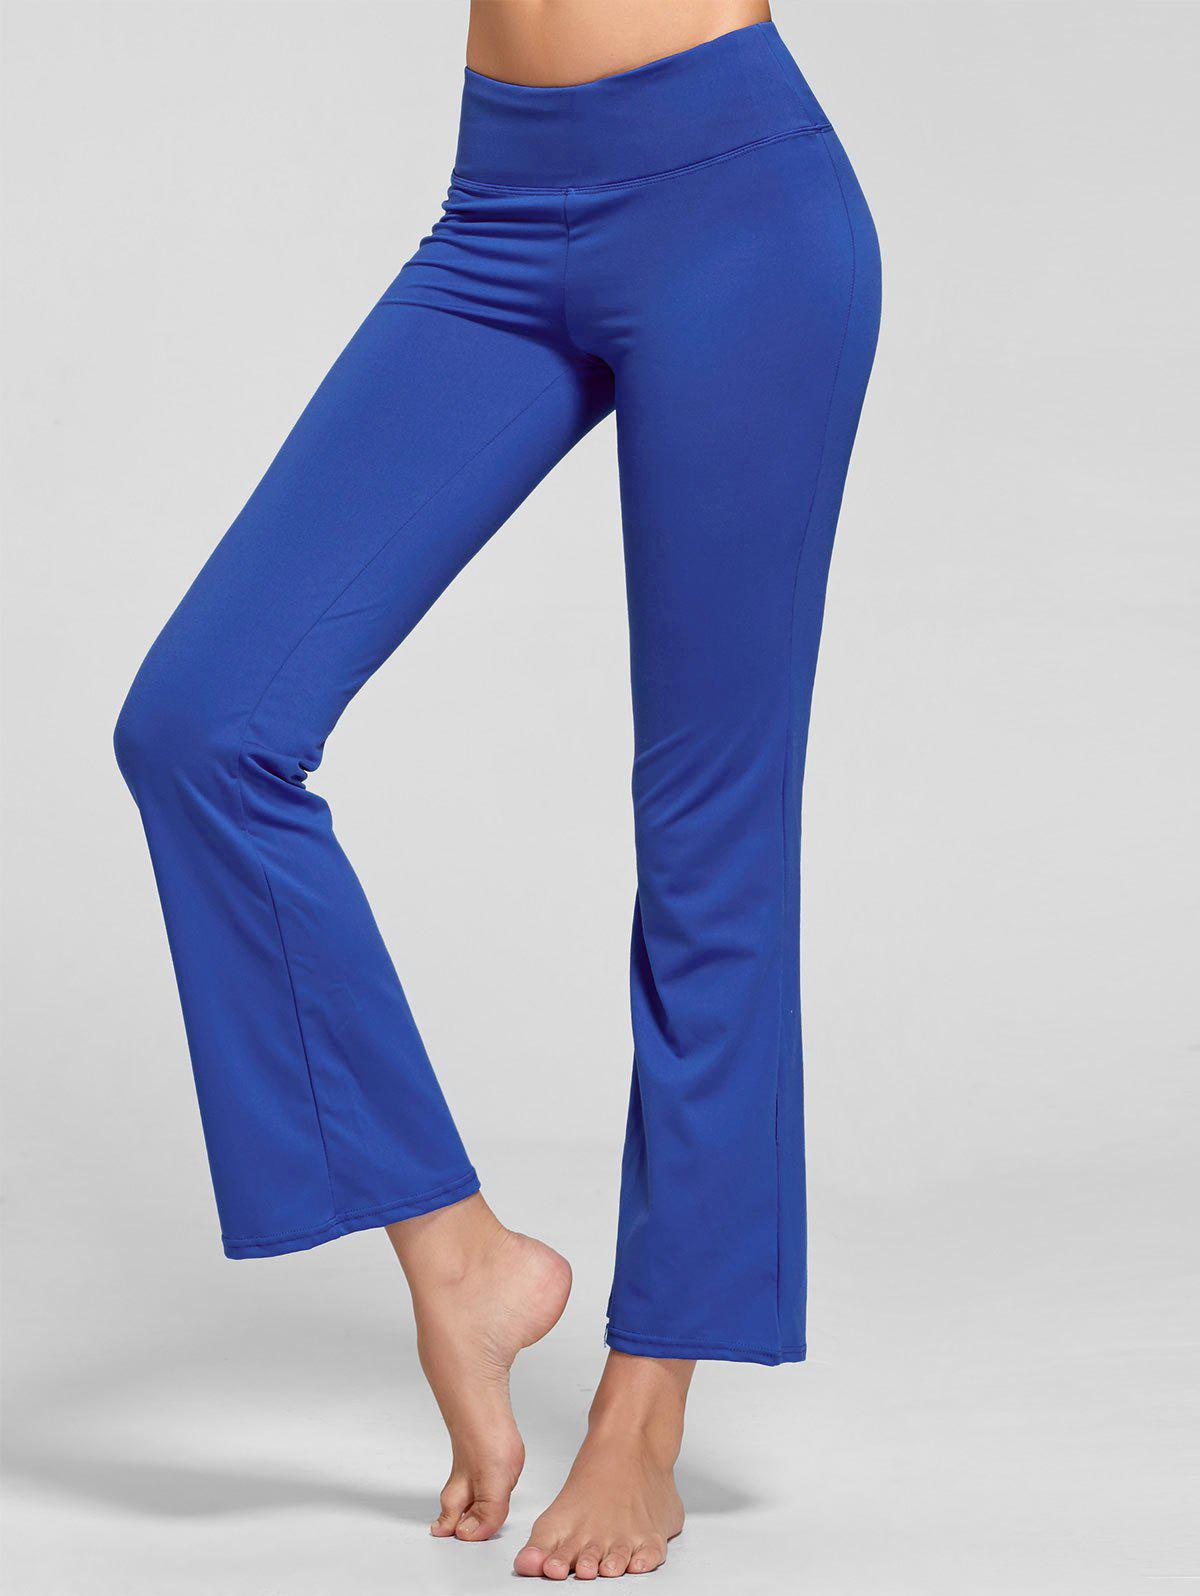 Stretch Bootcut Yoga Pants with Pocket - BLUE S